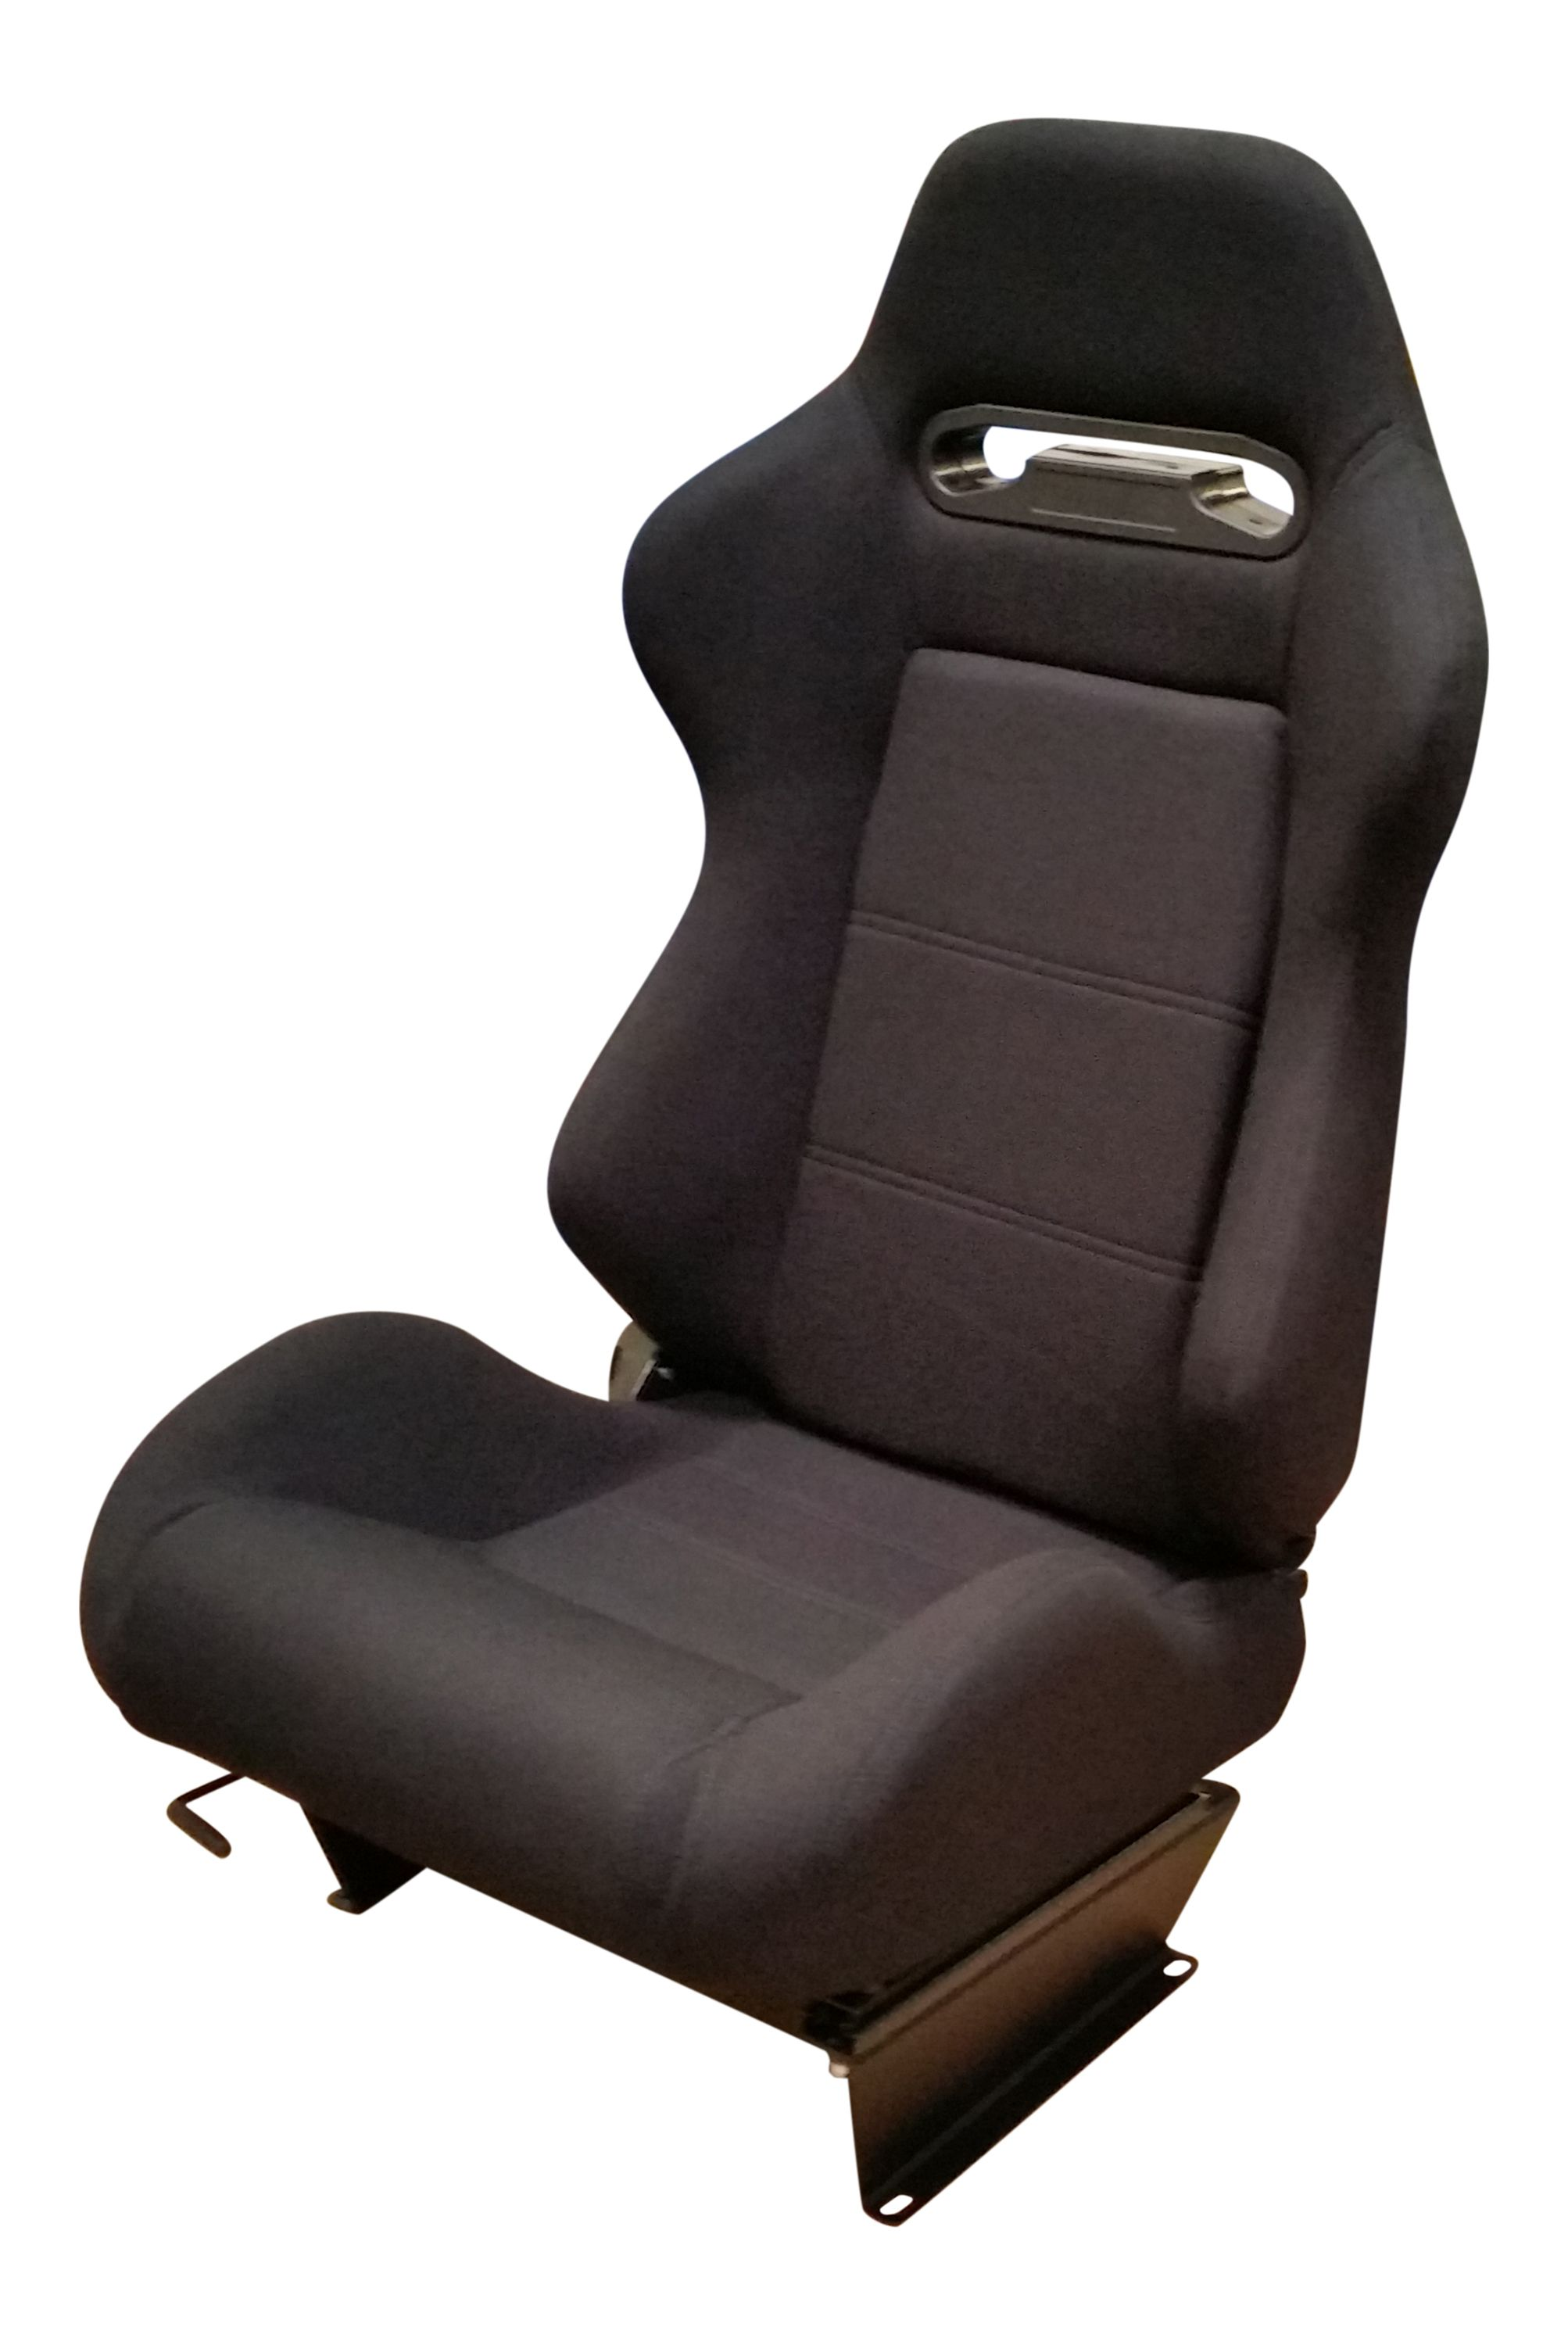 bucket seats reclining cgb1035 pair not available. Black Bedroom Furniture Sets. Home Design Ideas